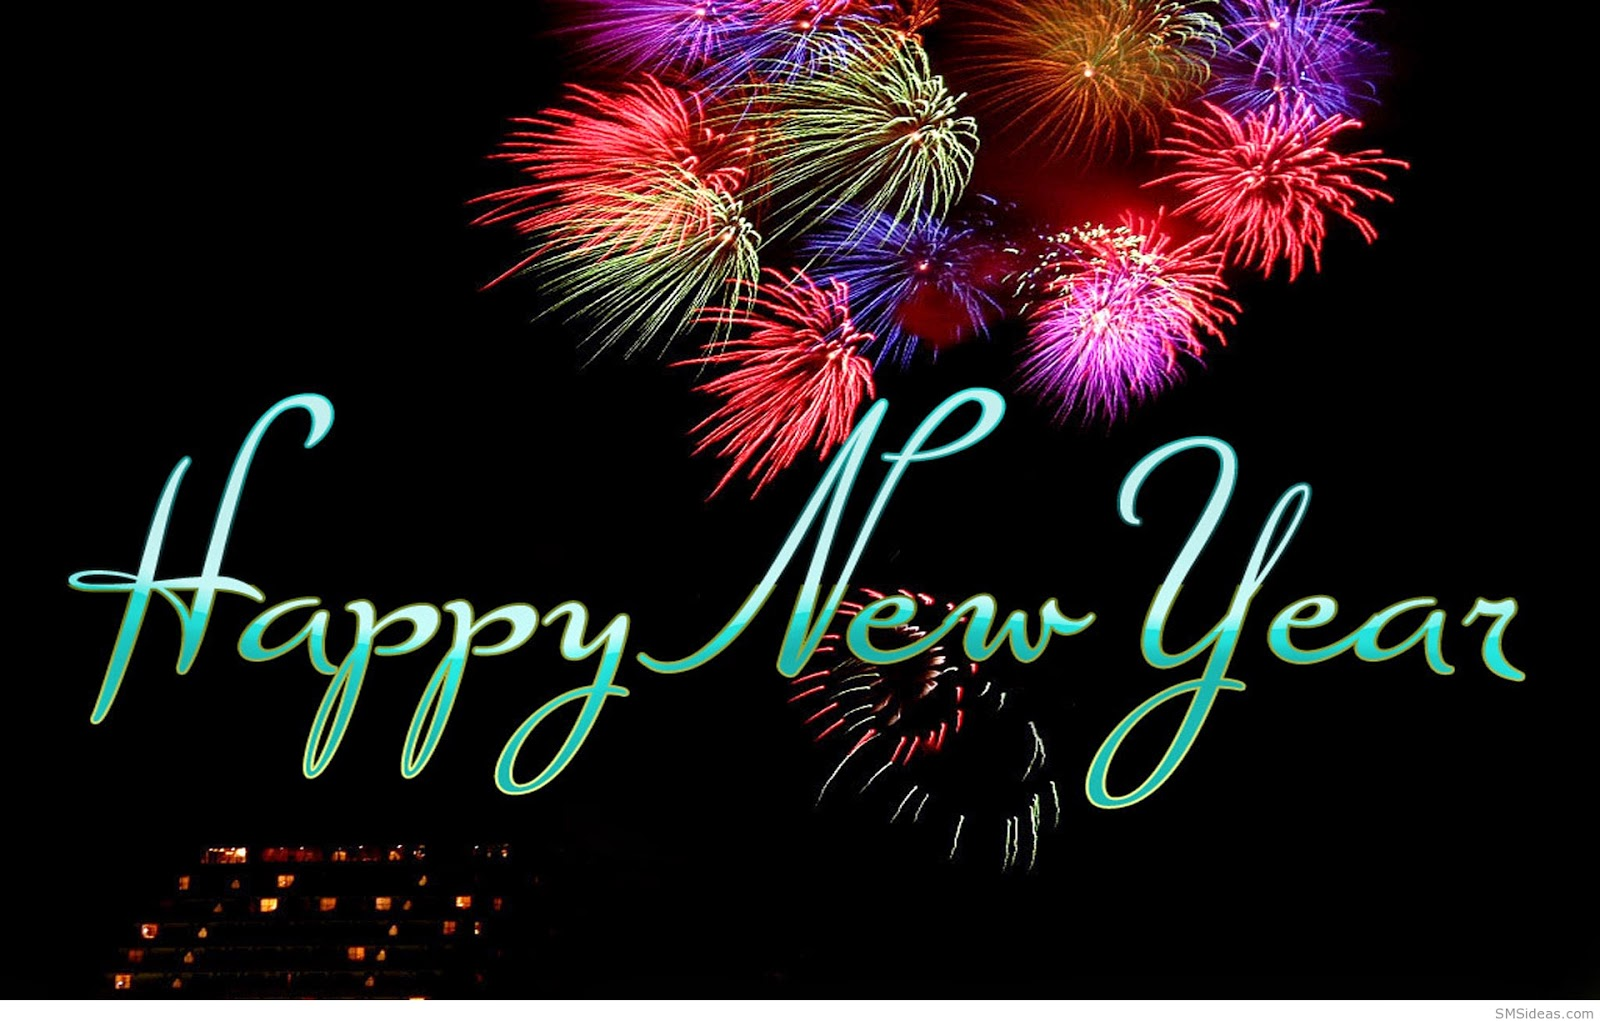 Wallpaper download new year 2016 - Happy New Year 2017 Hd Images Wallpapers Free Download